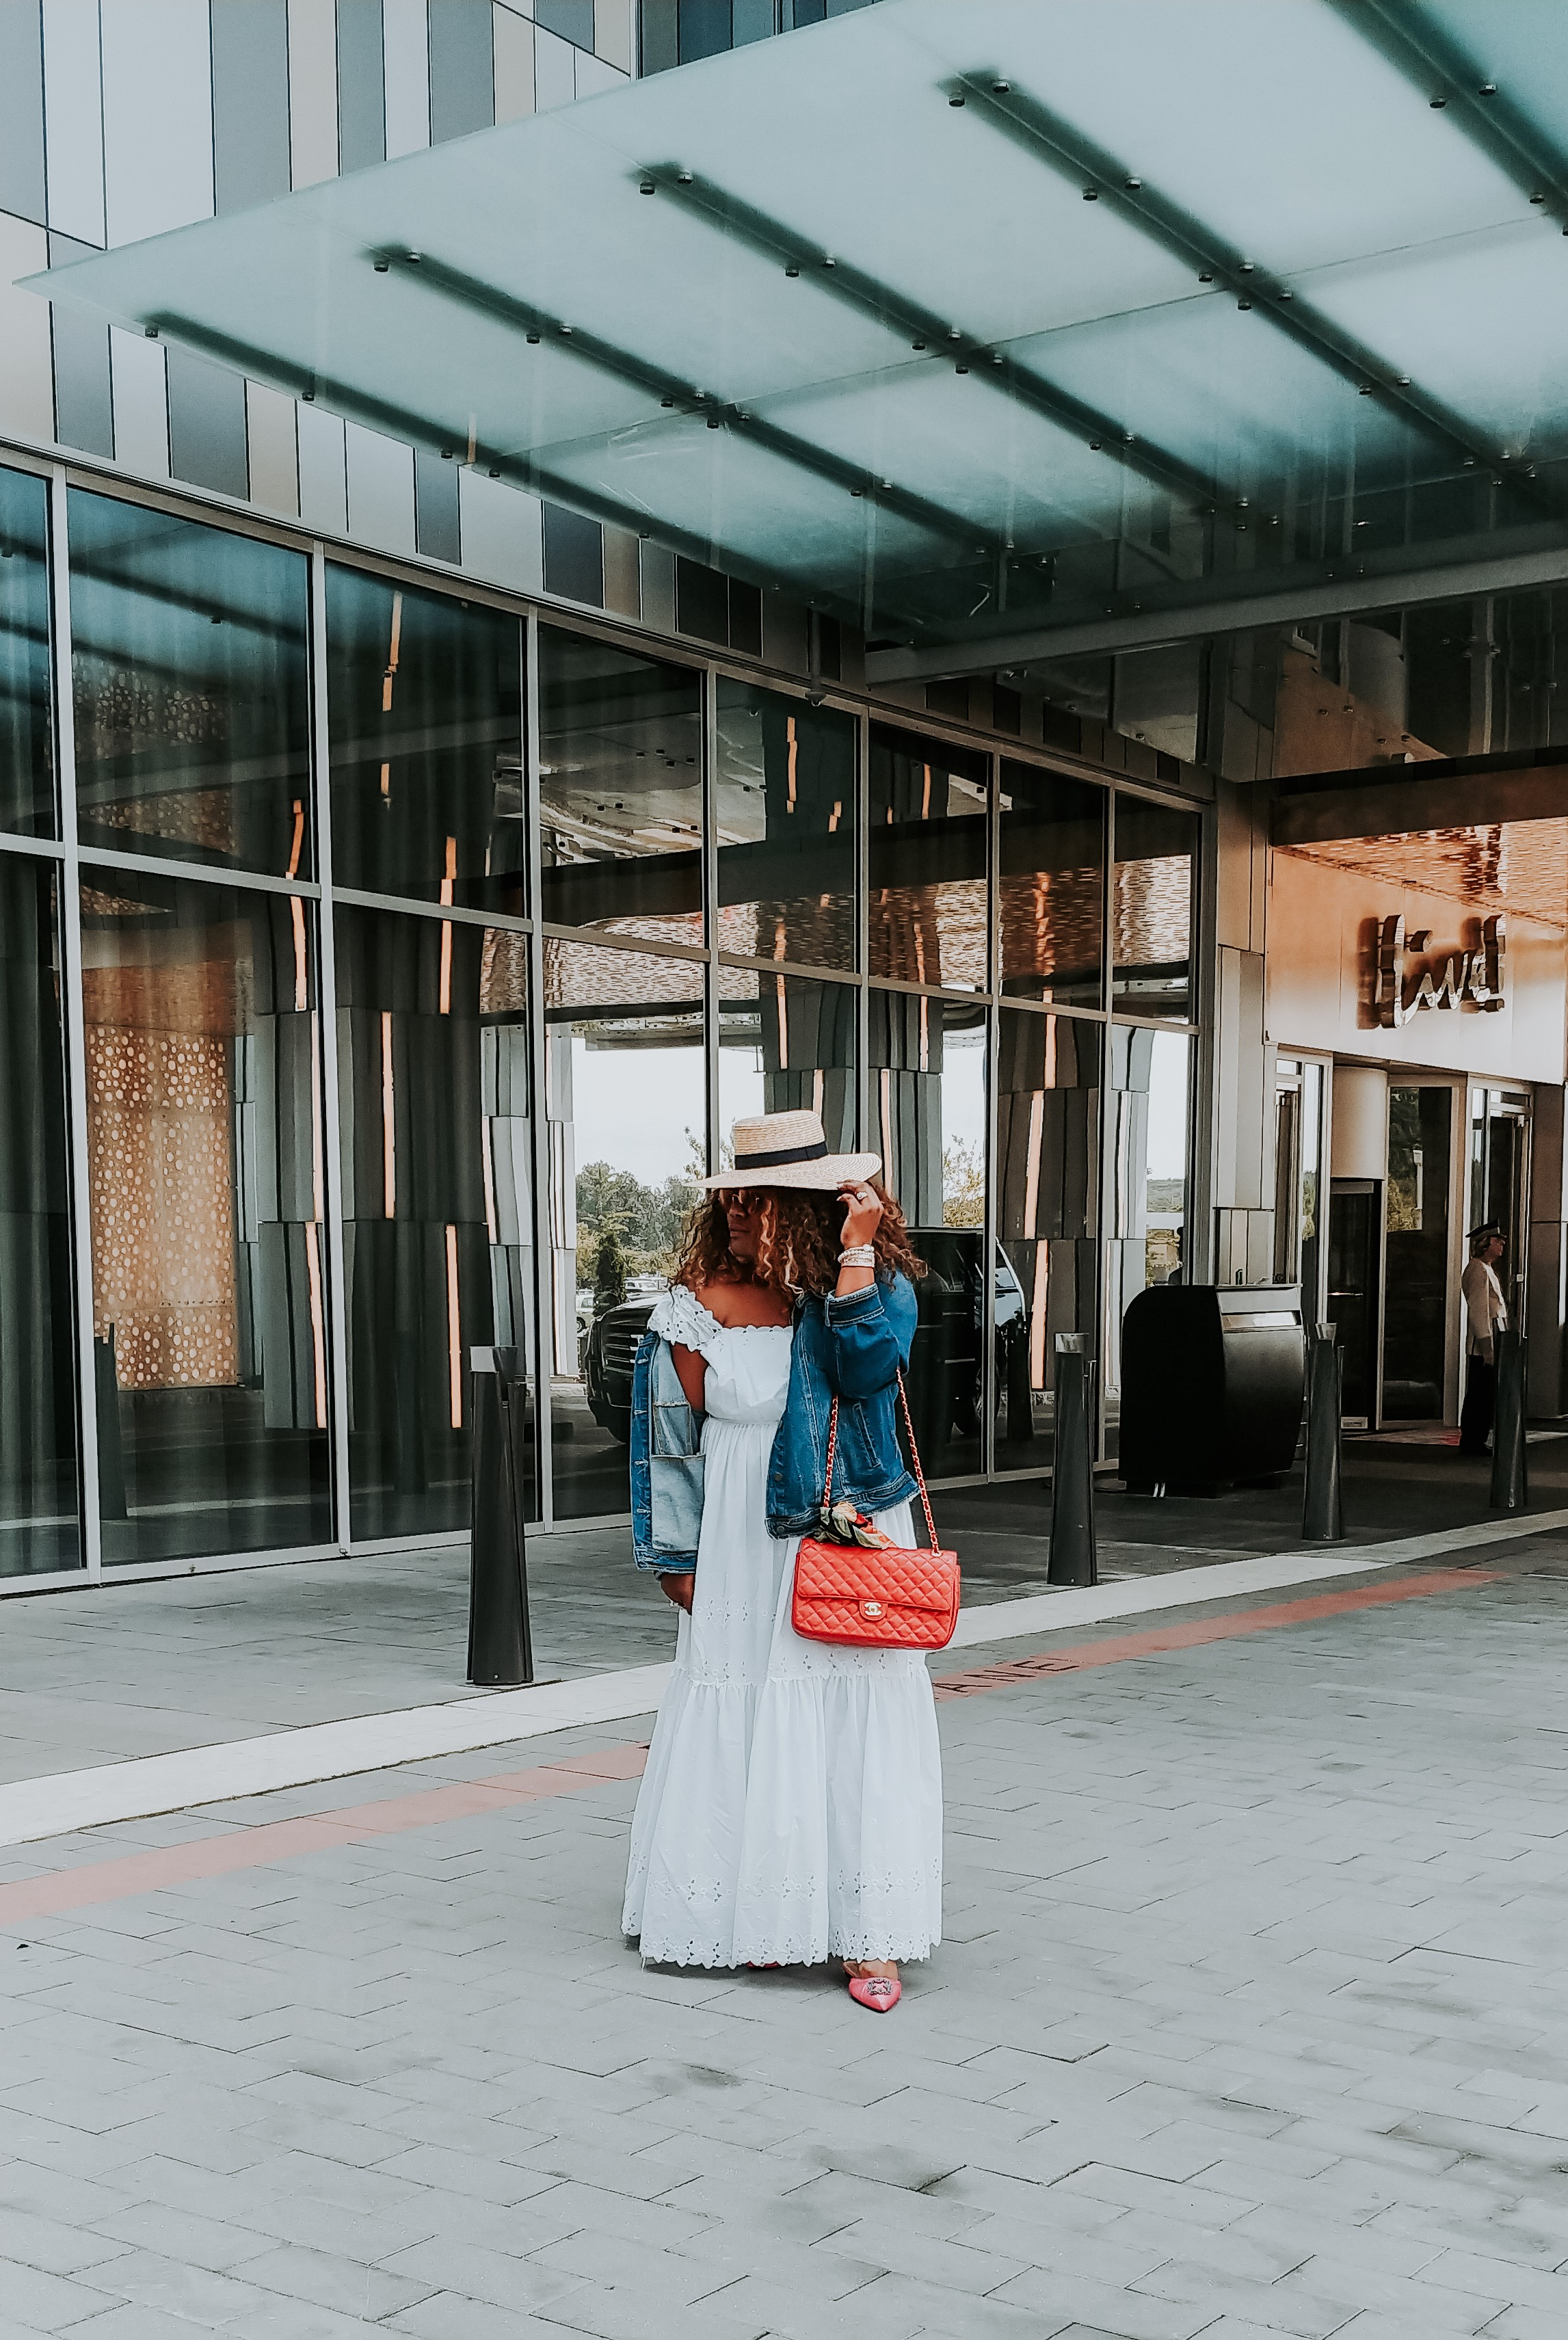 girl with a white dress and hat on posing outside - alwayscreatingblog.com